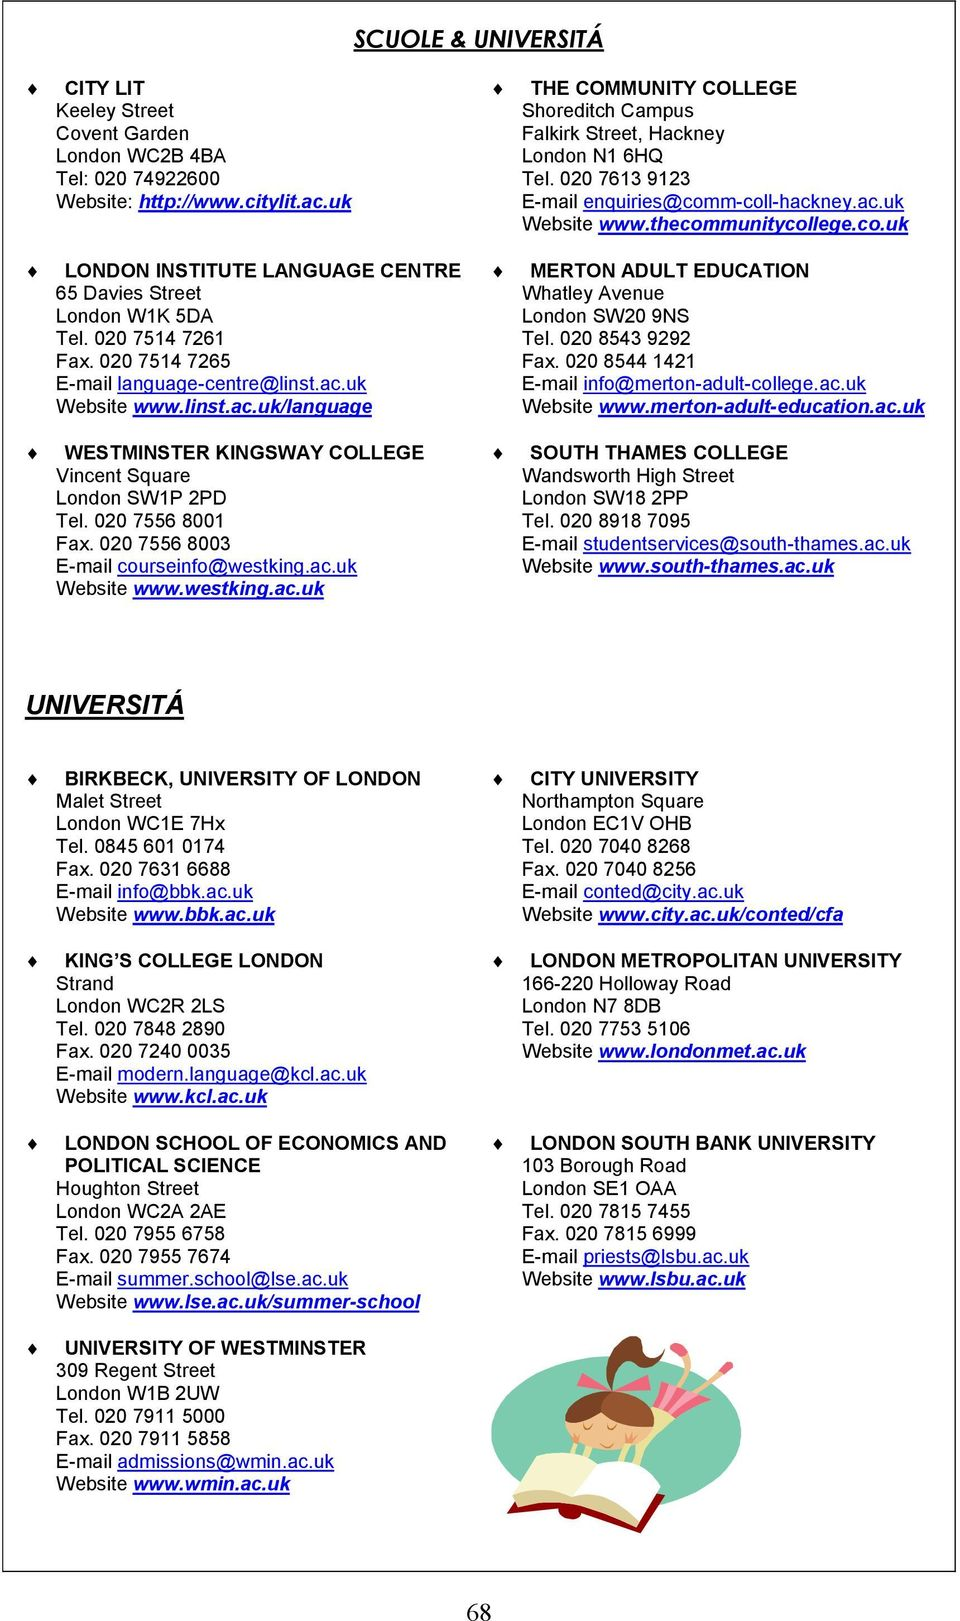 020 7514 7261 Fax. 020 7514 7265 E-mail language-centre@linst.ac.uk Website www.linst.ac.uk/language MERTON ADULT EDUCATION Whatley Avenue London SW20 9NS Tel. 020 8543 9292 Fax.